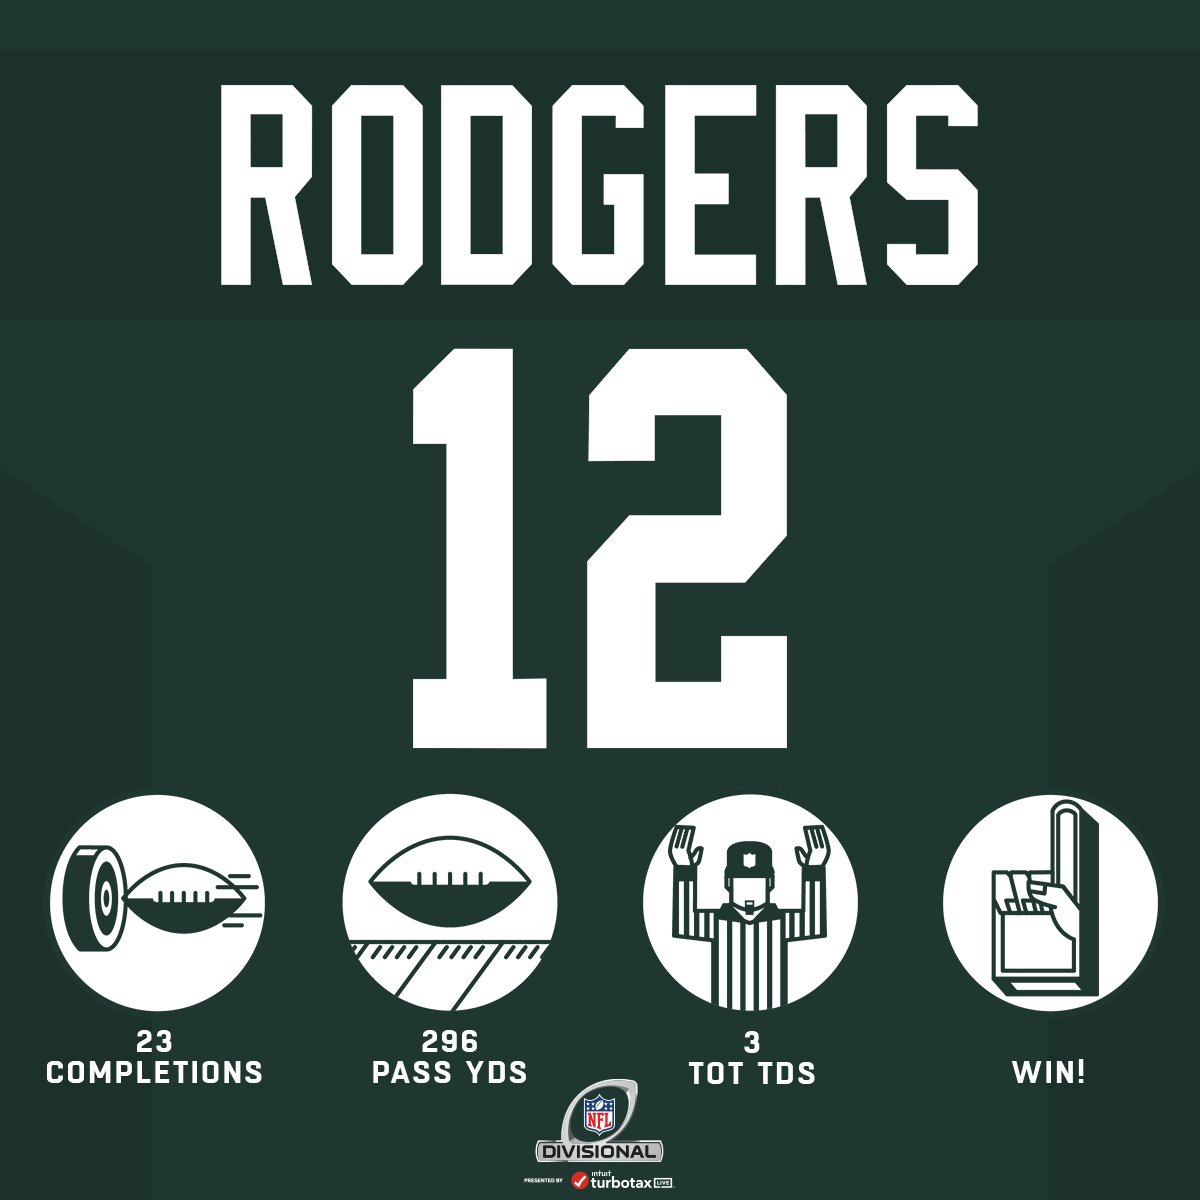 RT @NFL: On to his fifth NFC Championship. @AaronRodgers12. #HaveADay #GoPackGo (by @TruistNews) https://t.co/AtO0BKyy72